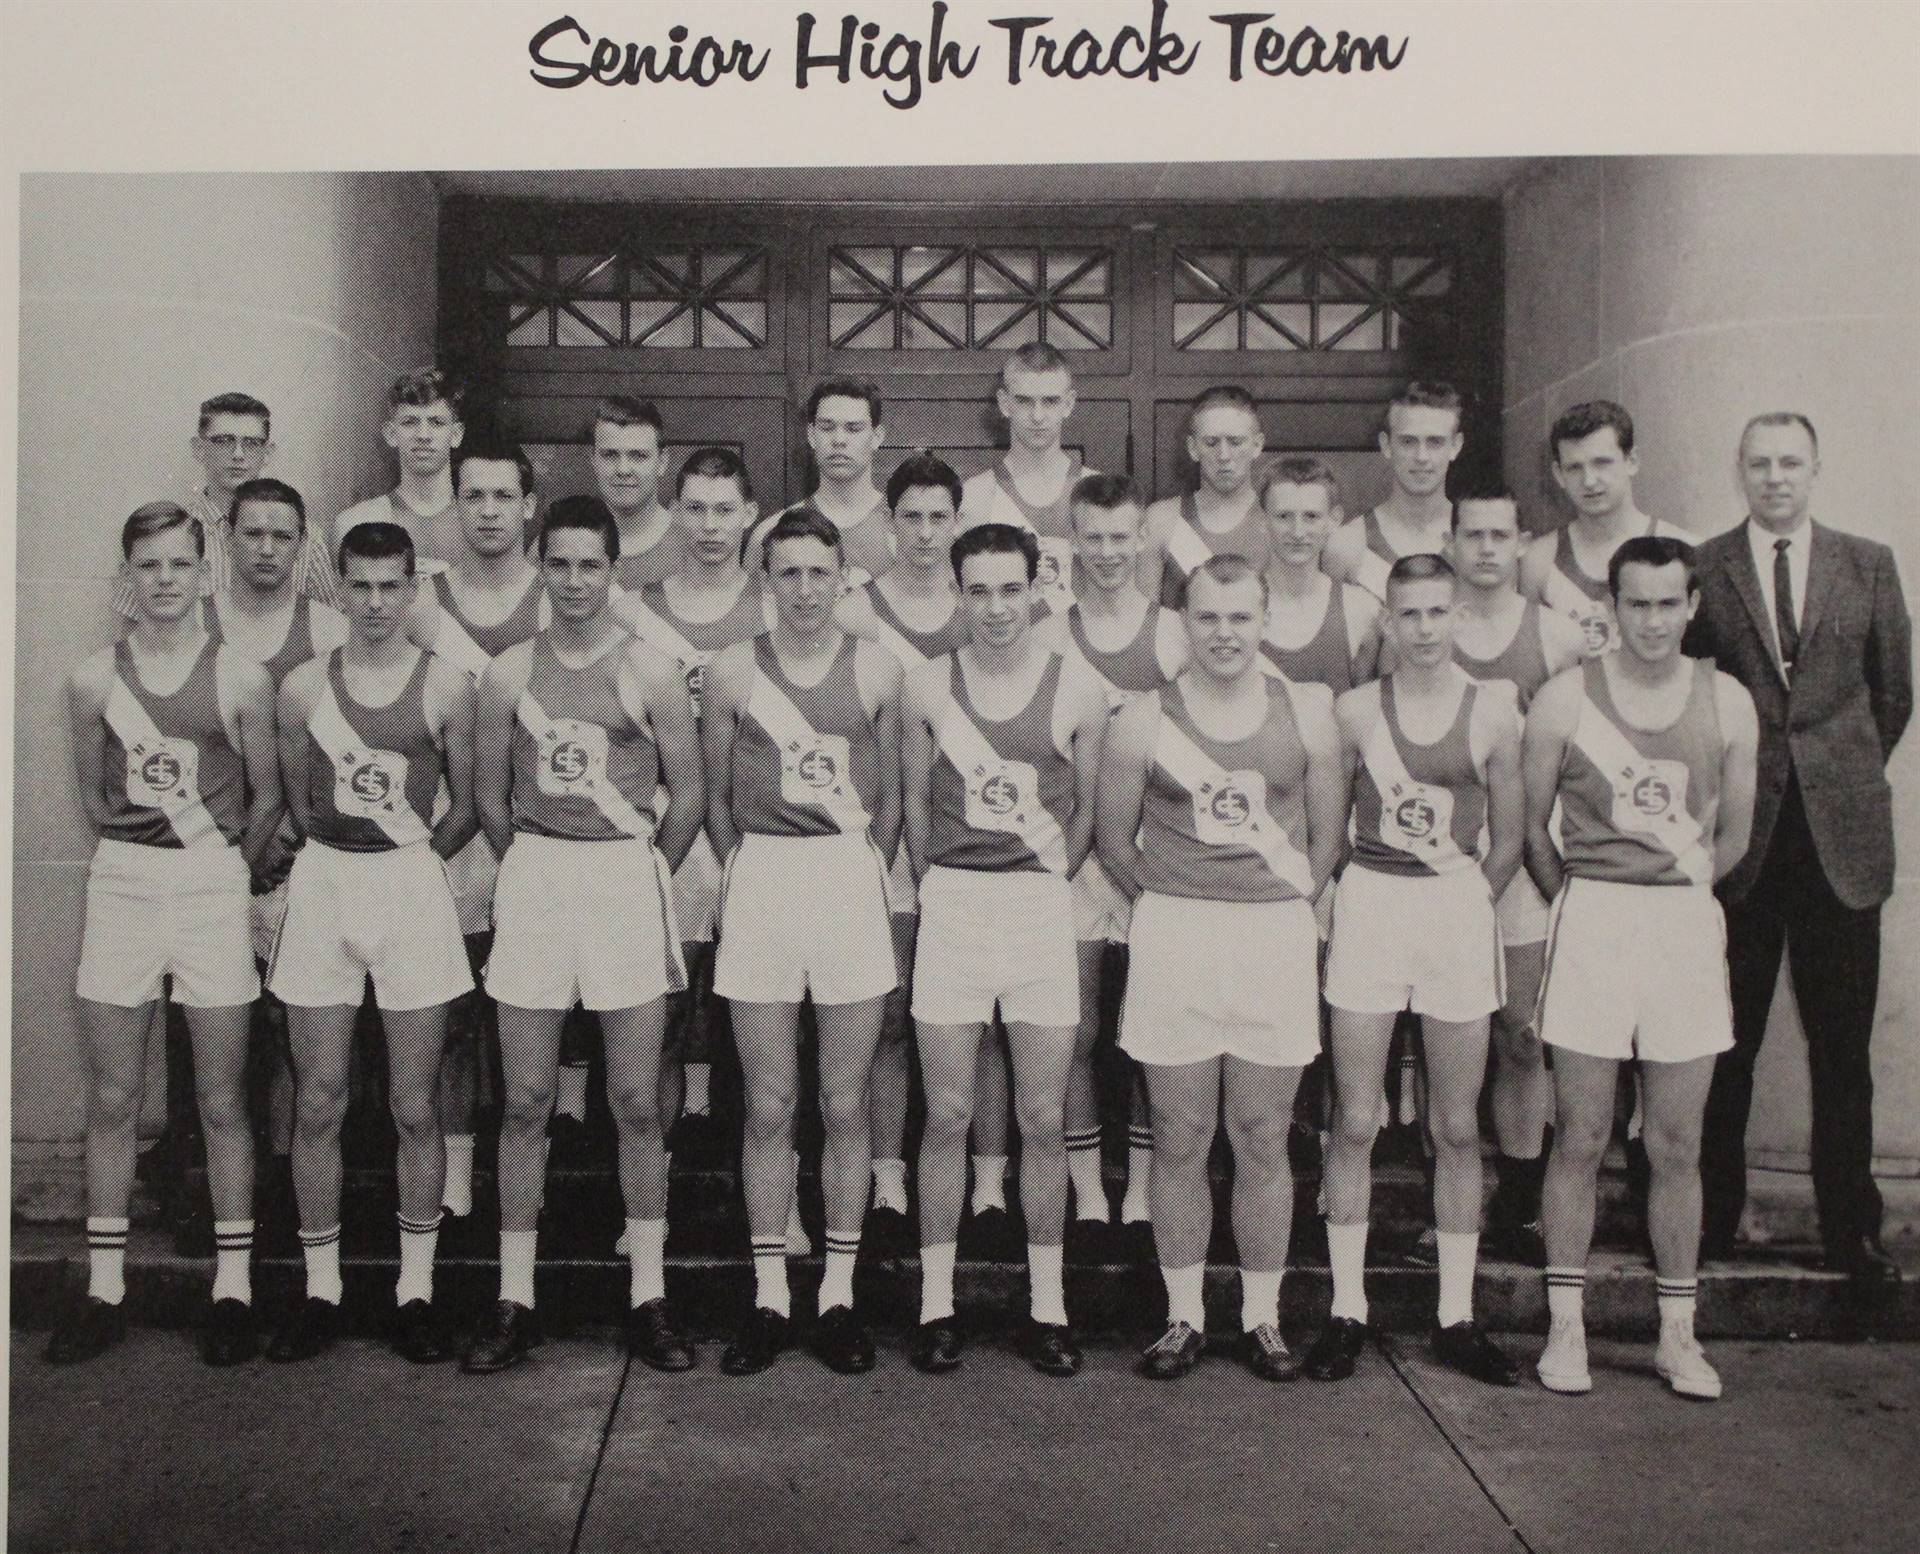 1964 Senior High Track Team